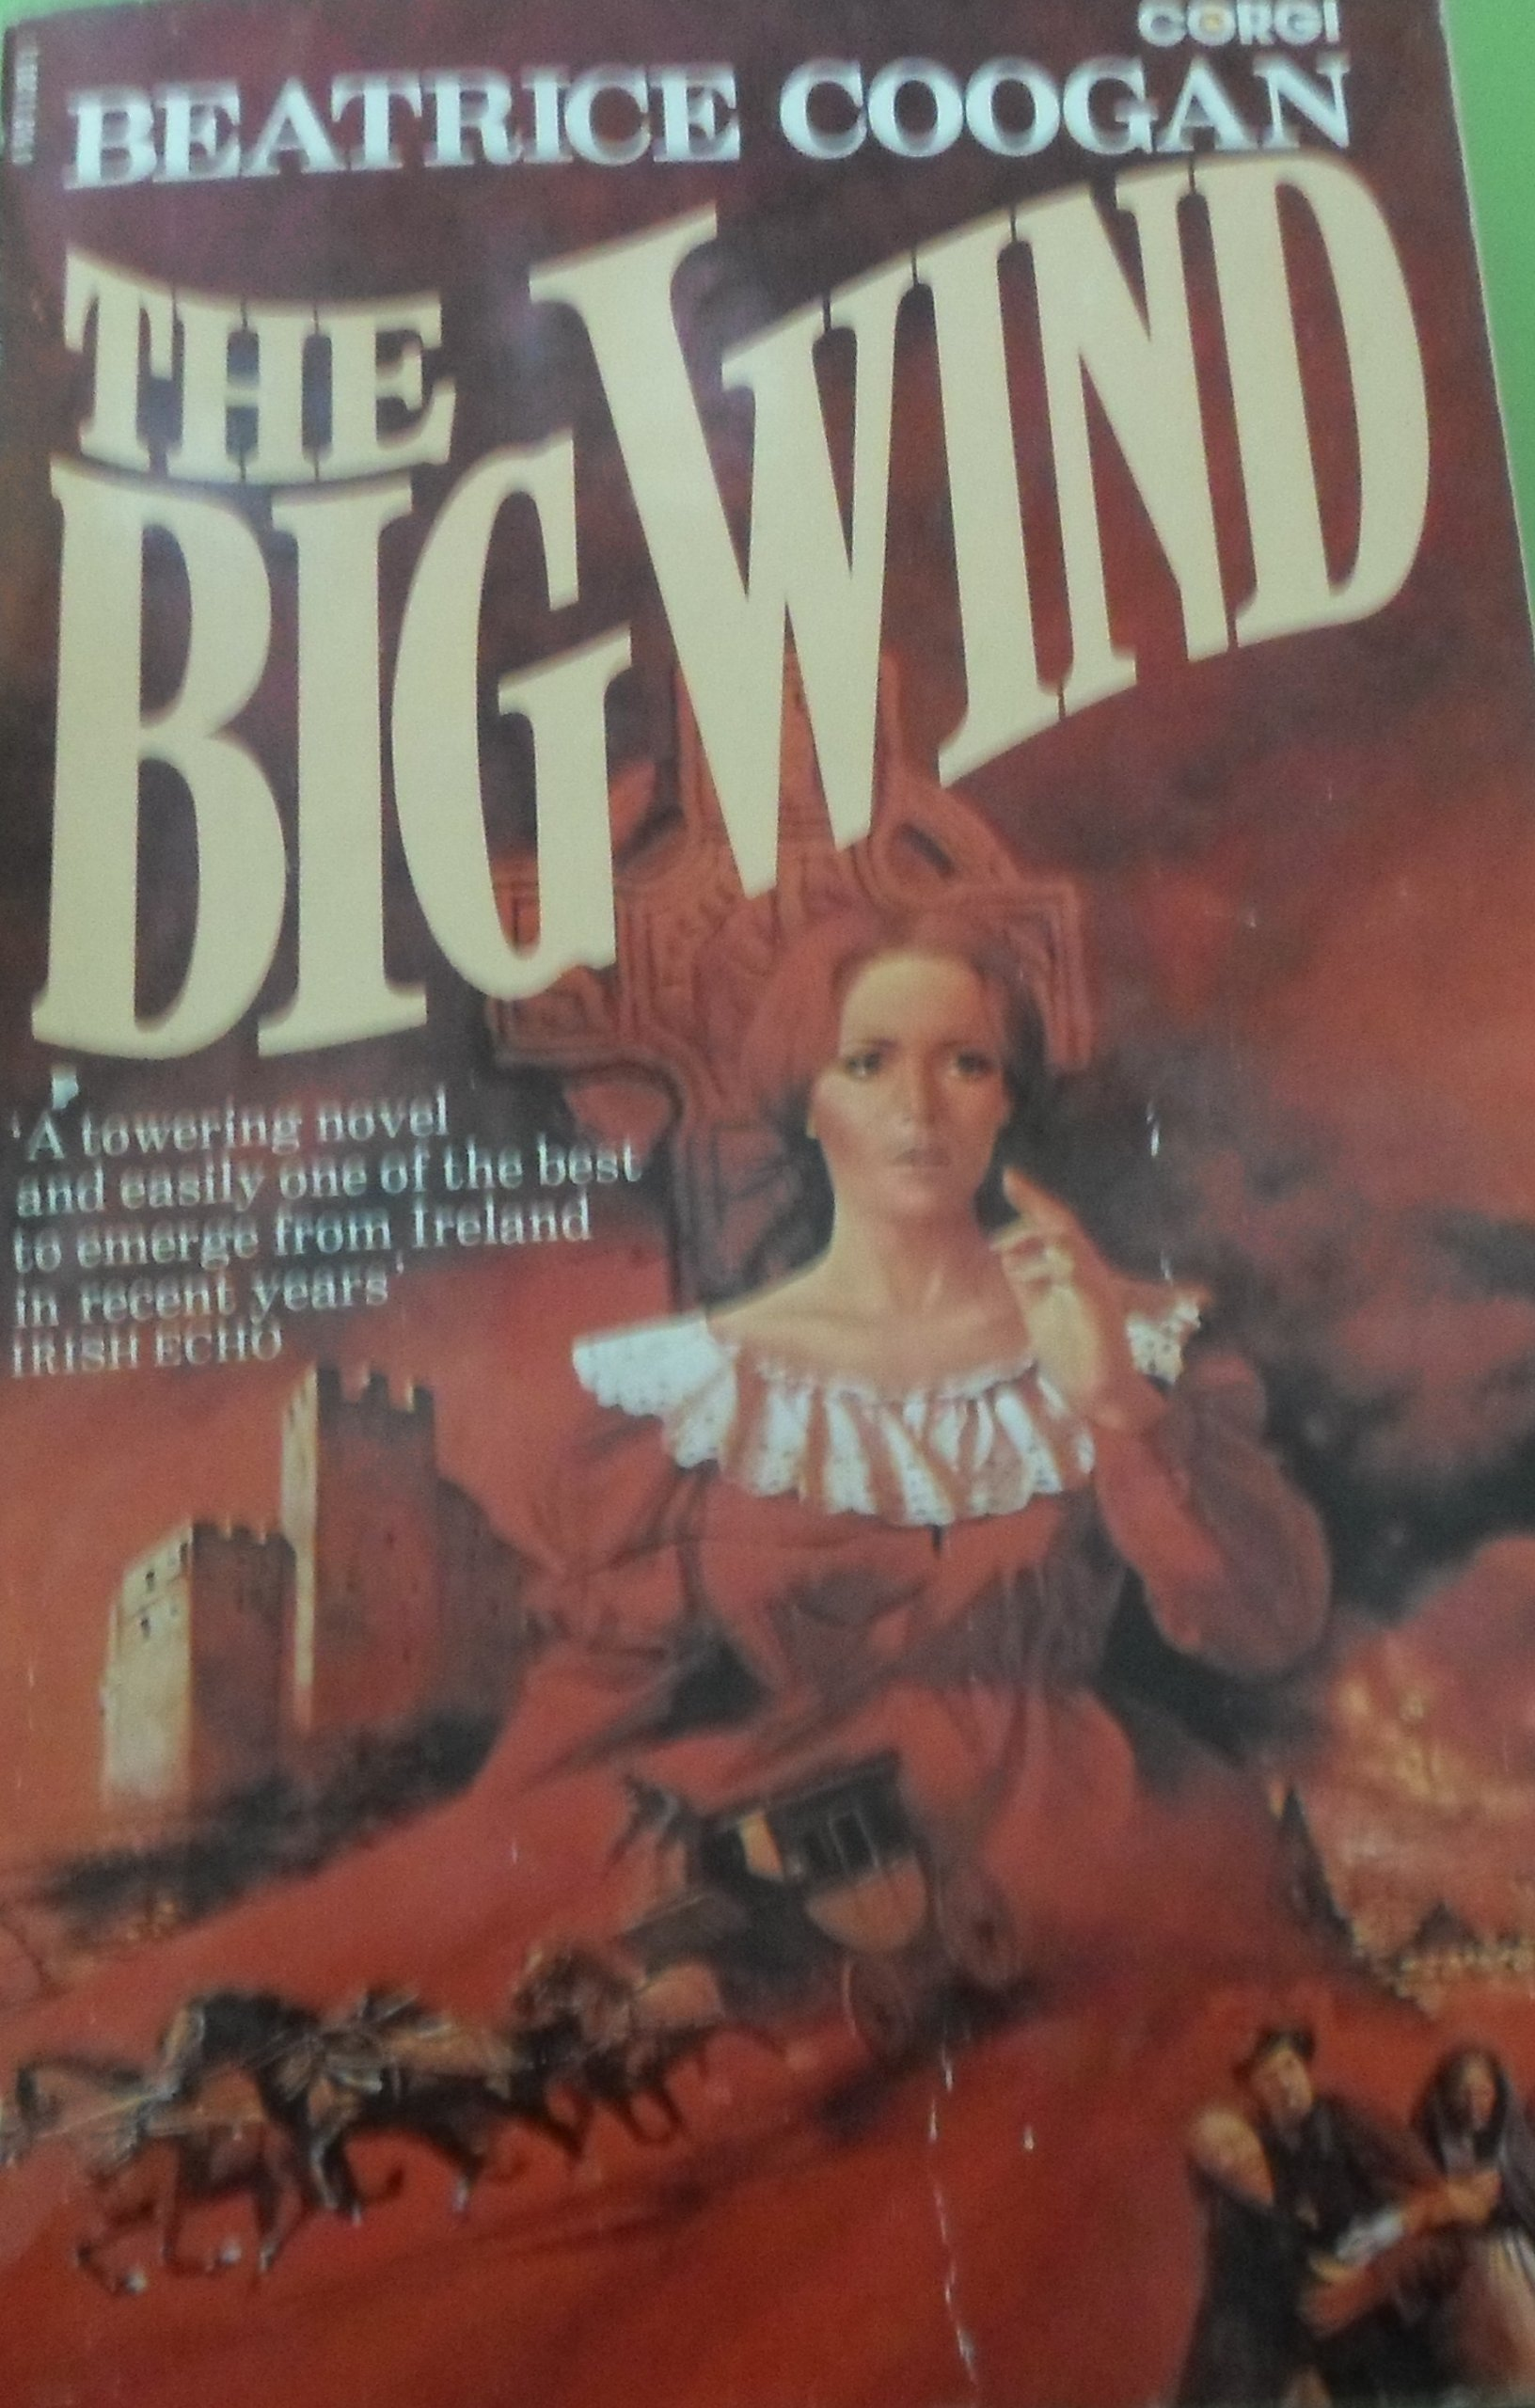 Download The Big Wind A Novel Of Ireland By Beatrice Coogan